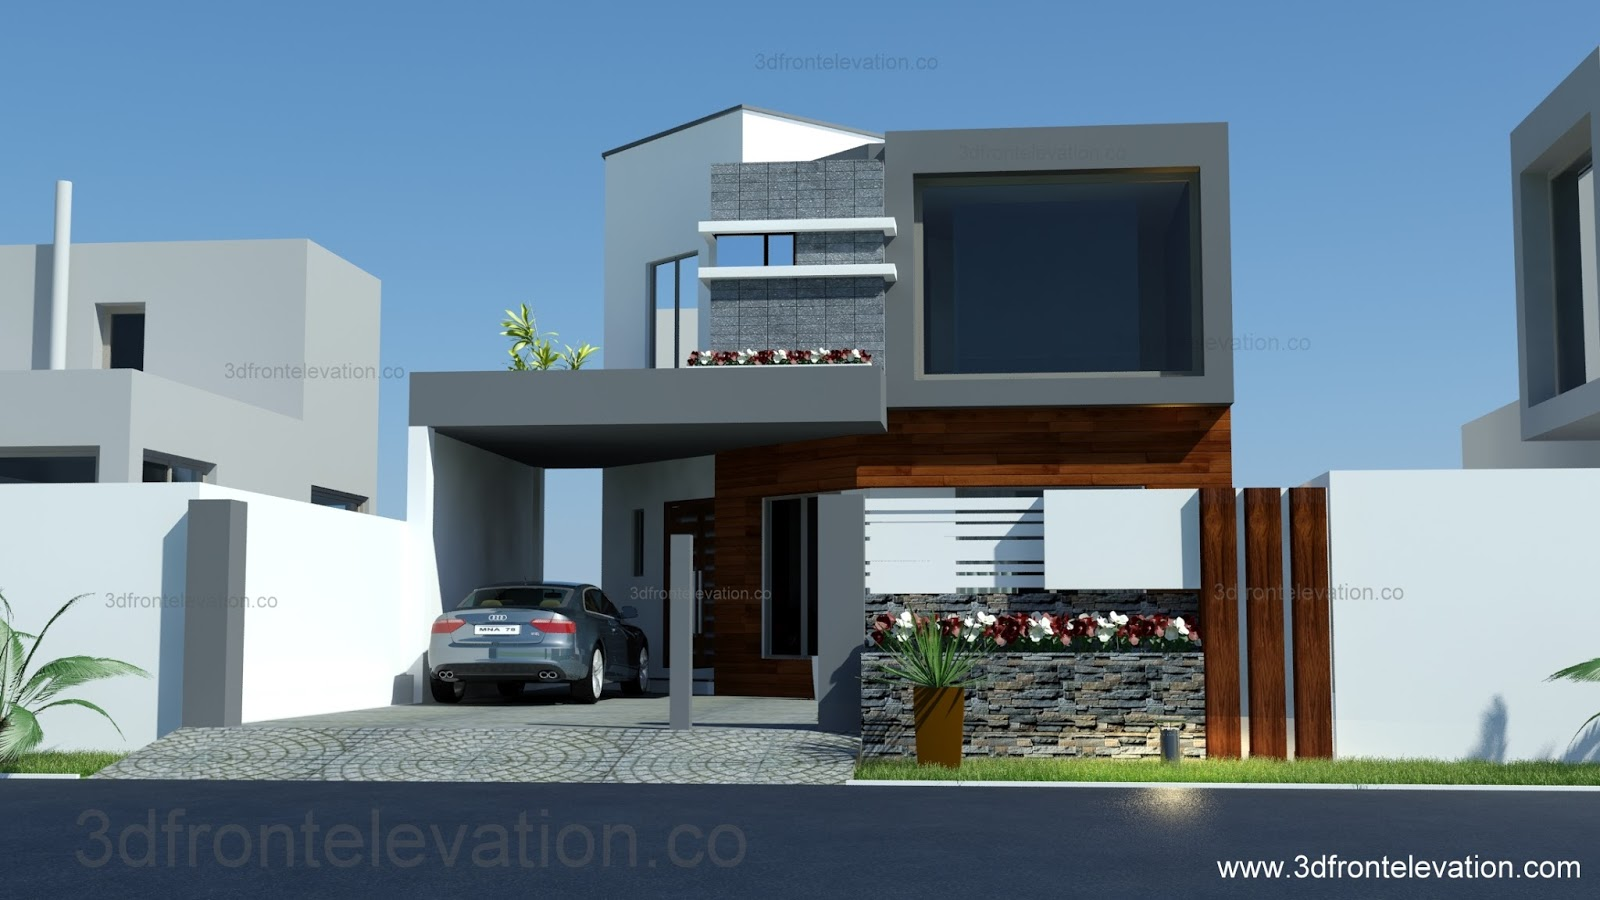 8 Marla House Plan-Layout-Elevation